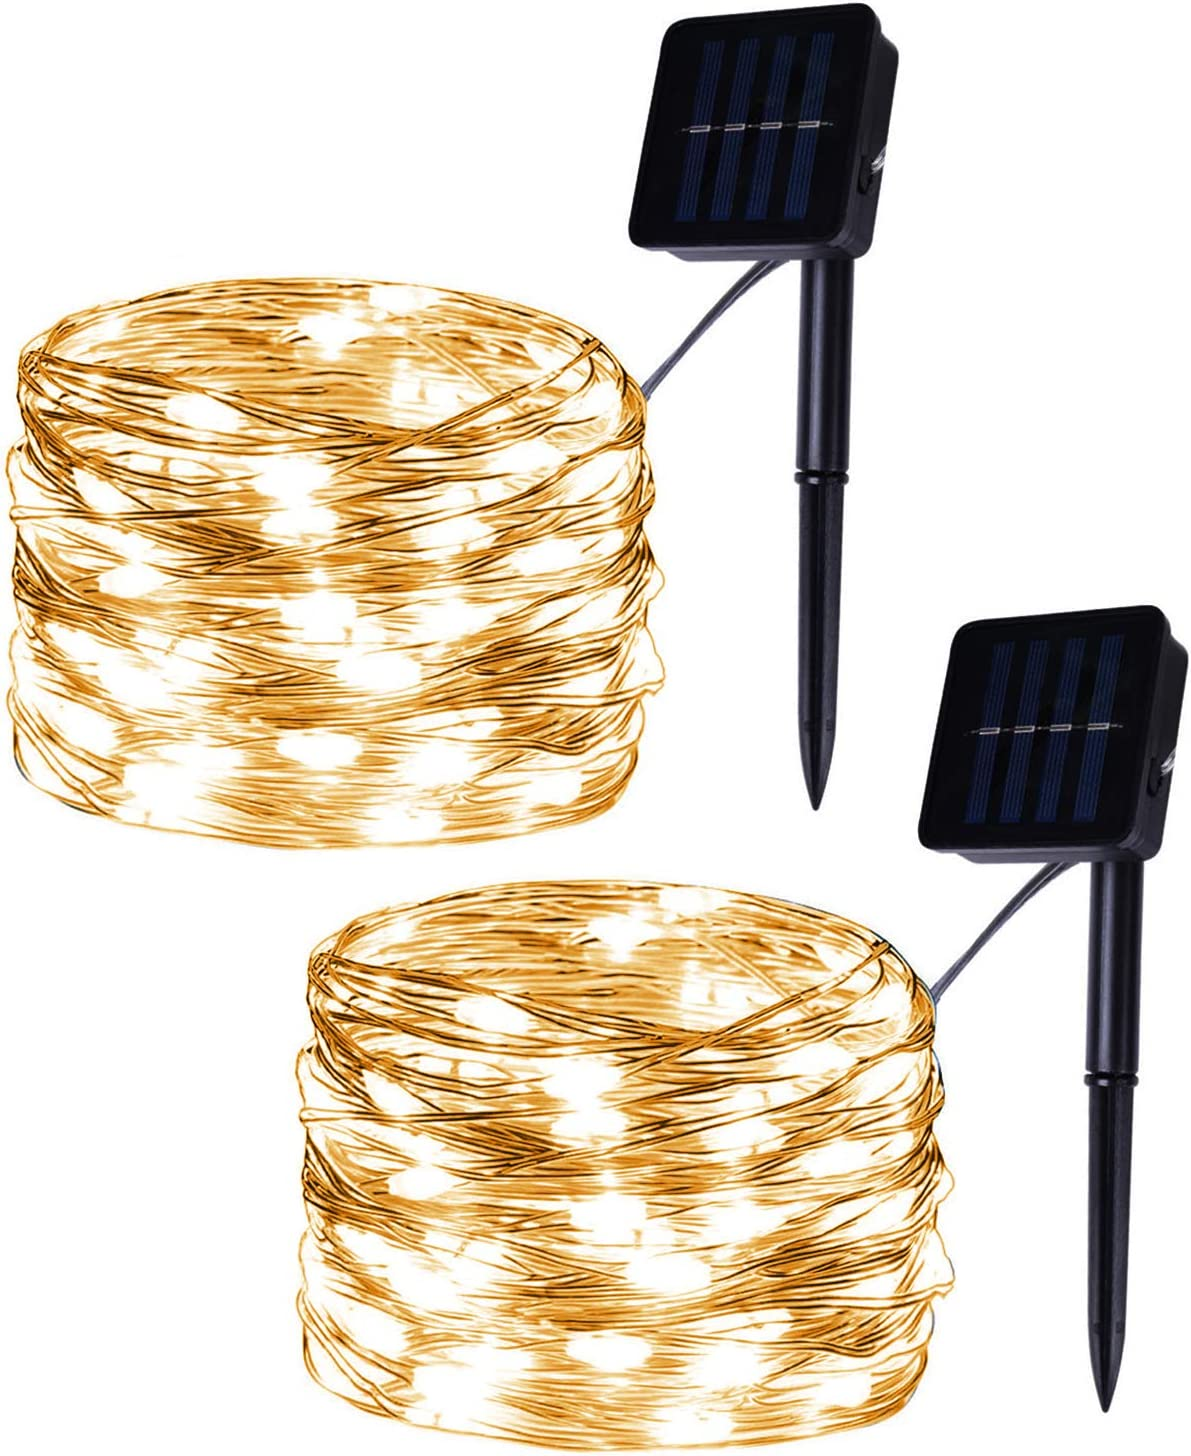 Set of 2 Flexible 100-LED Solar Powered Copper Wire String Lights, Warm White Fairy Lights, 8 Modes Christmas Lights for Outdoor, Room, Party, Garden Decor